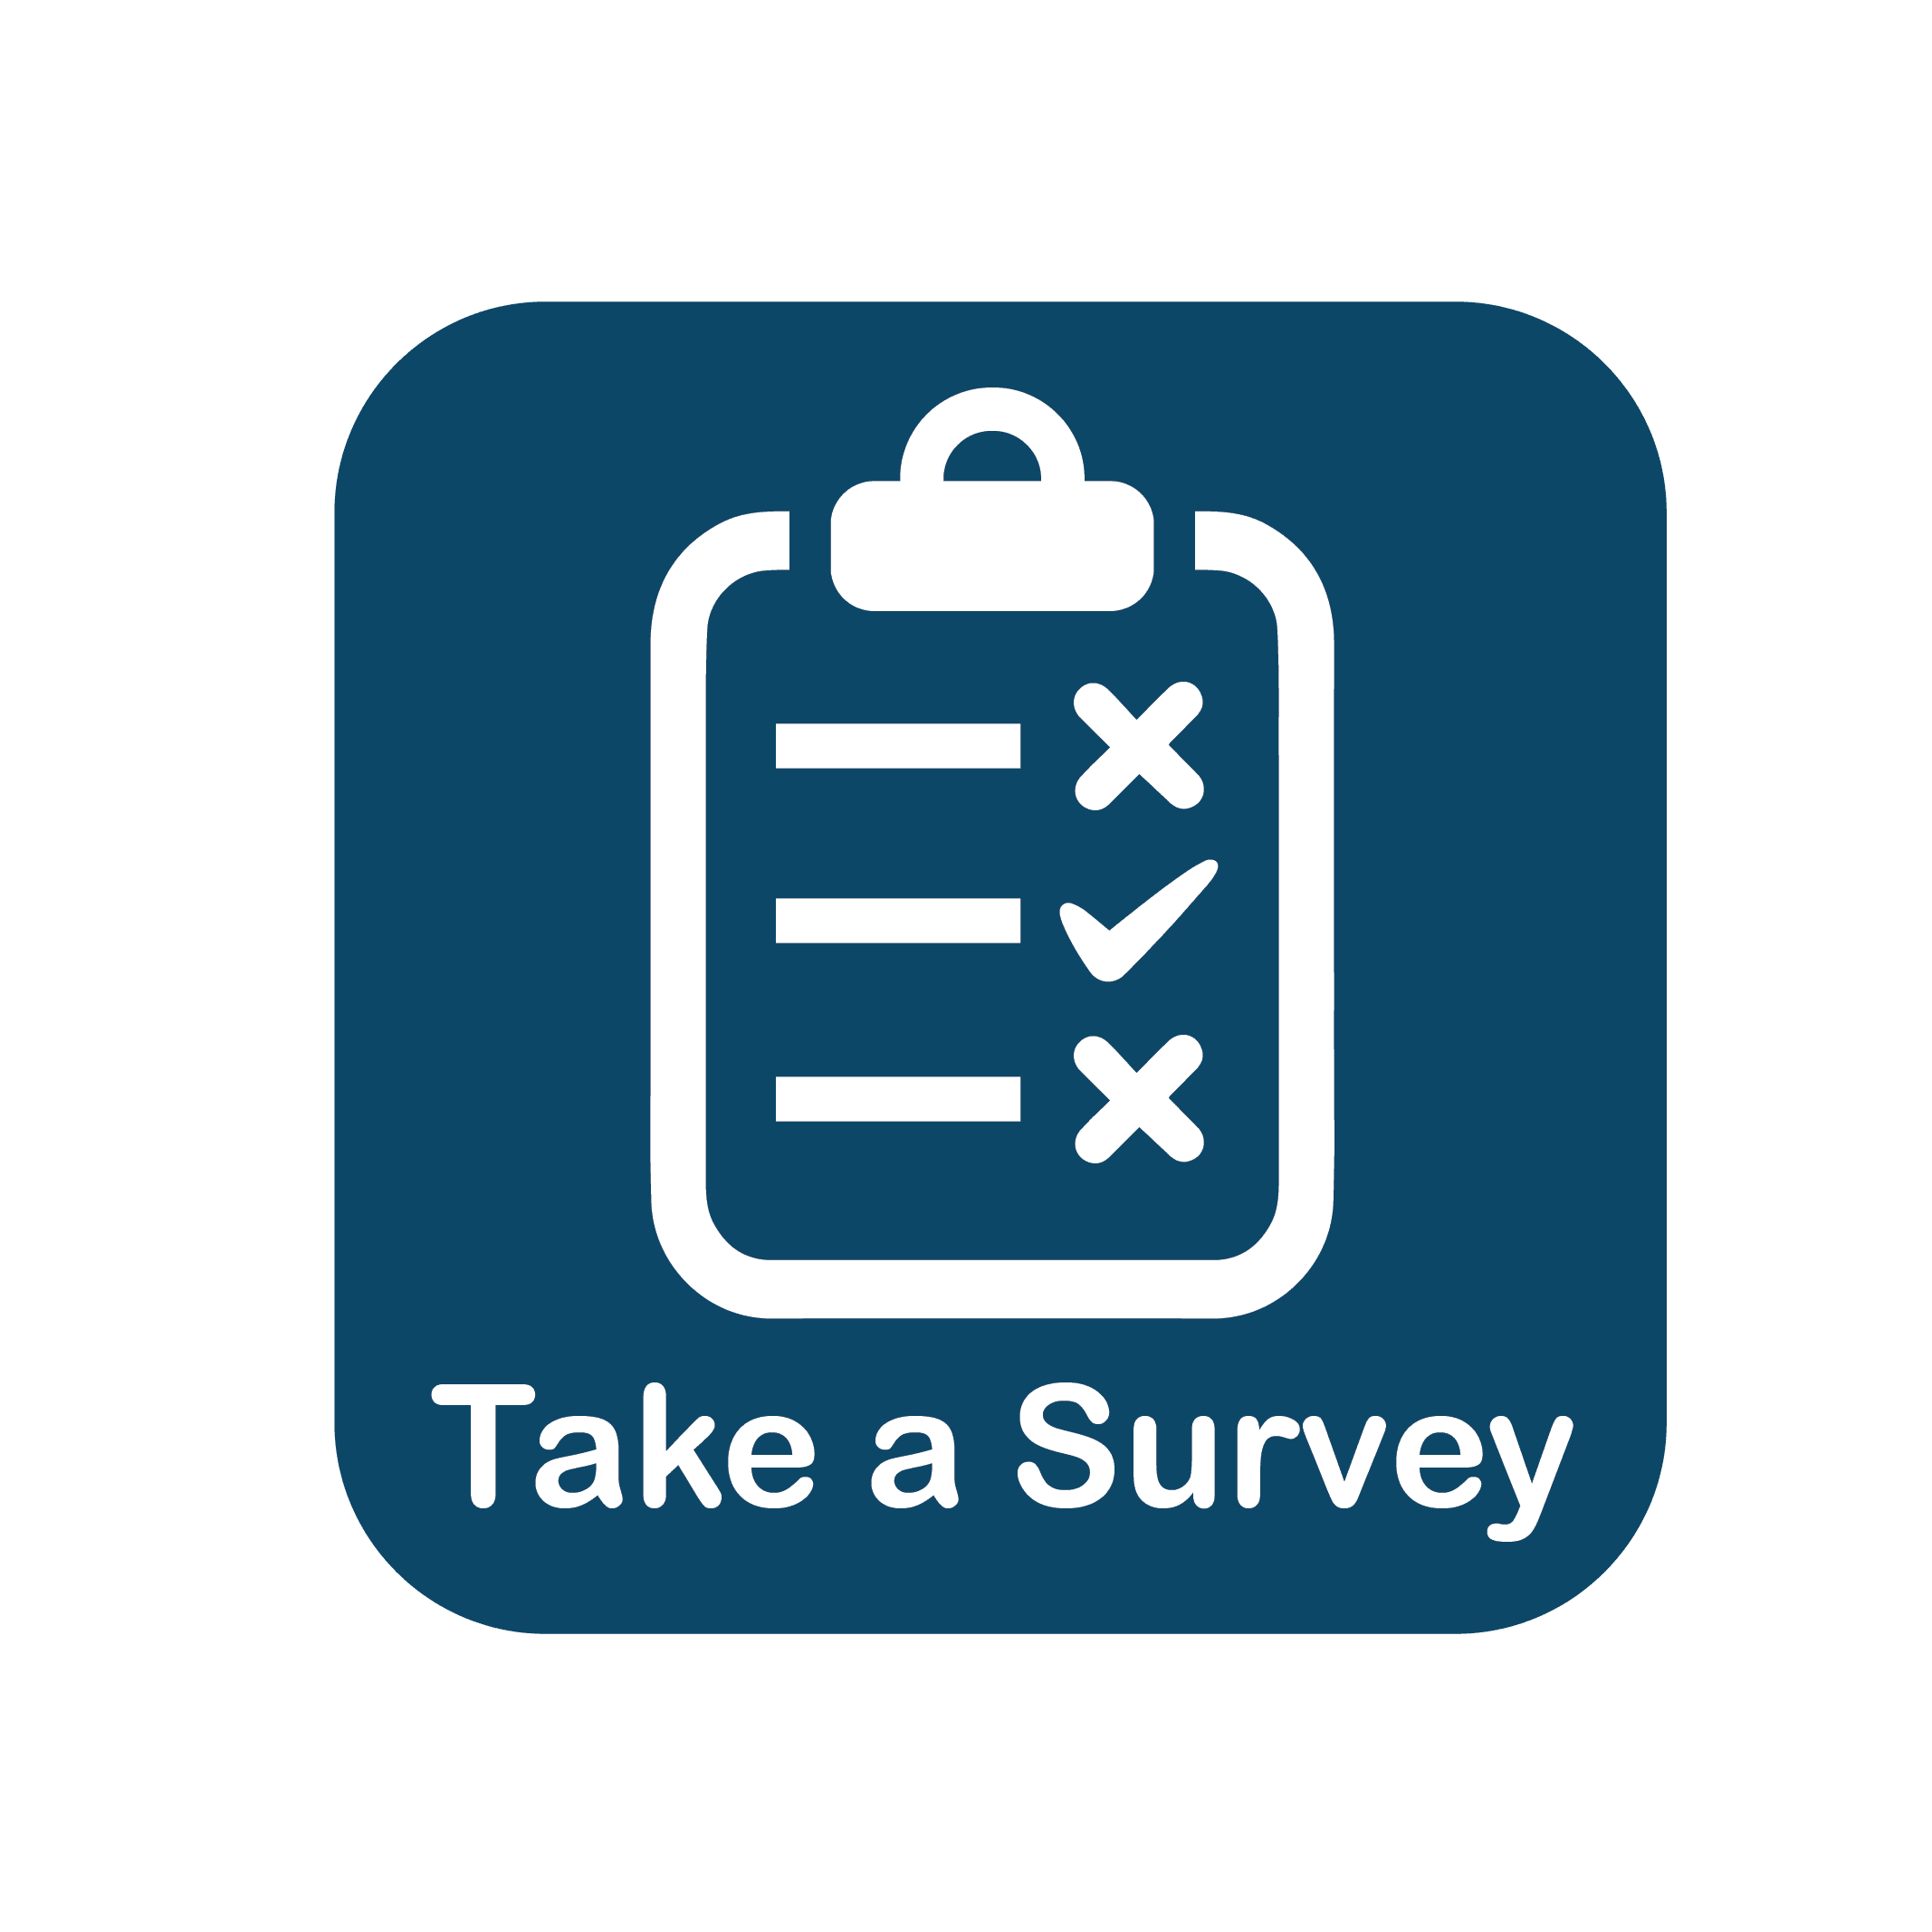 Survey regarding When should Cultural Arts and Events return